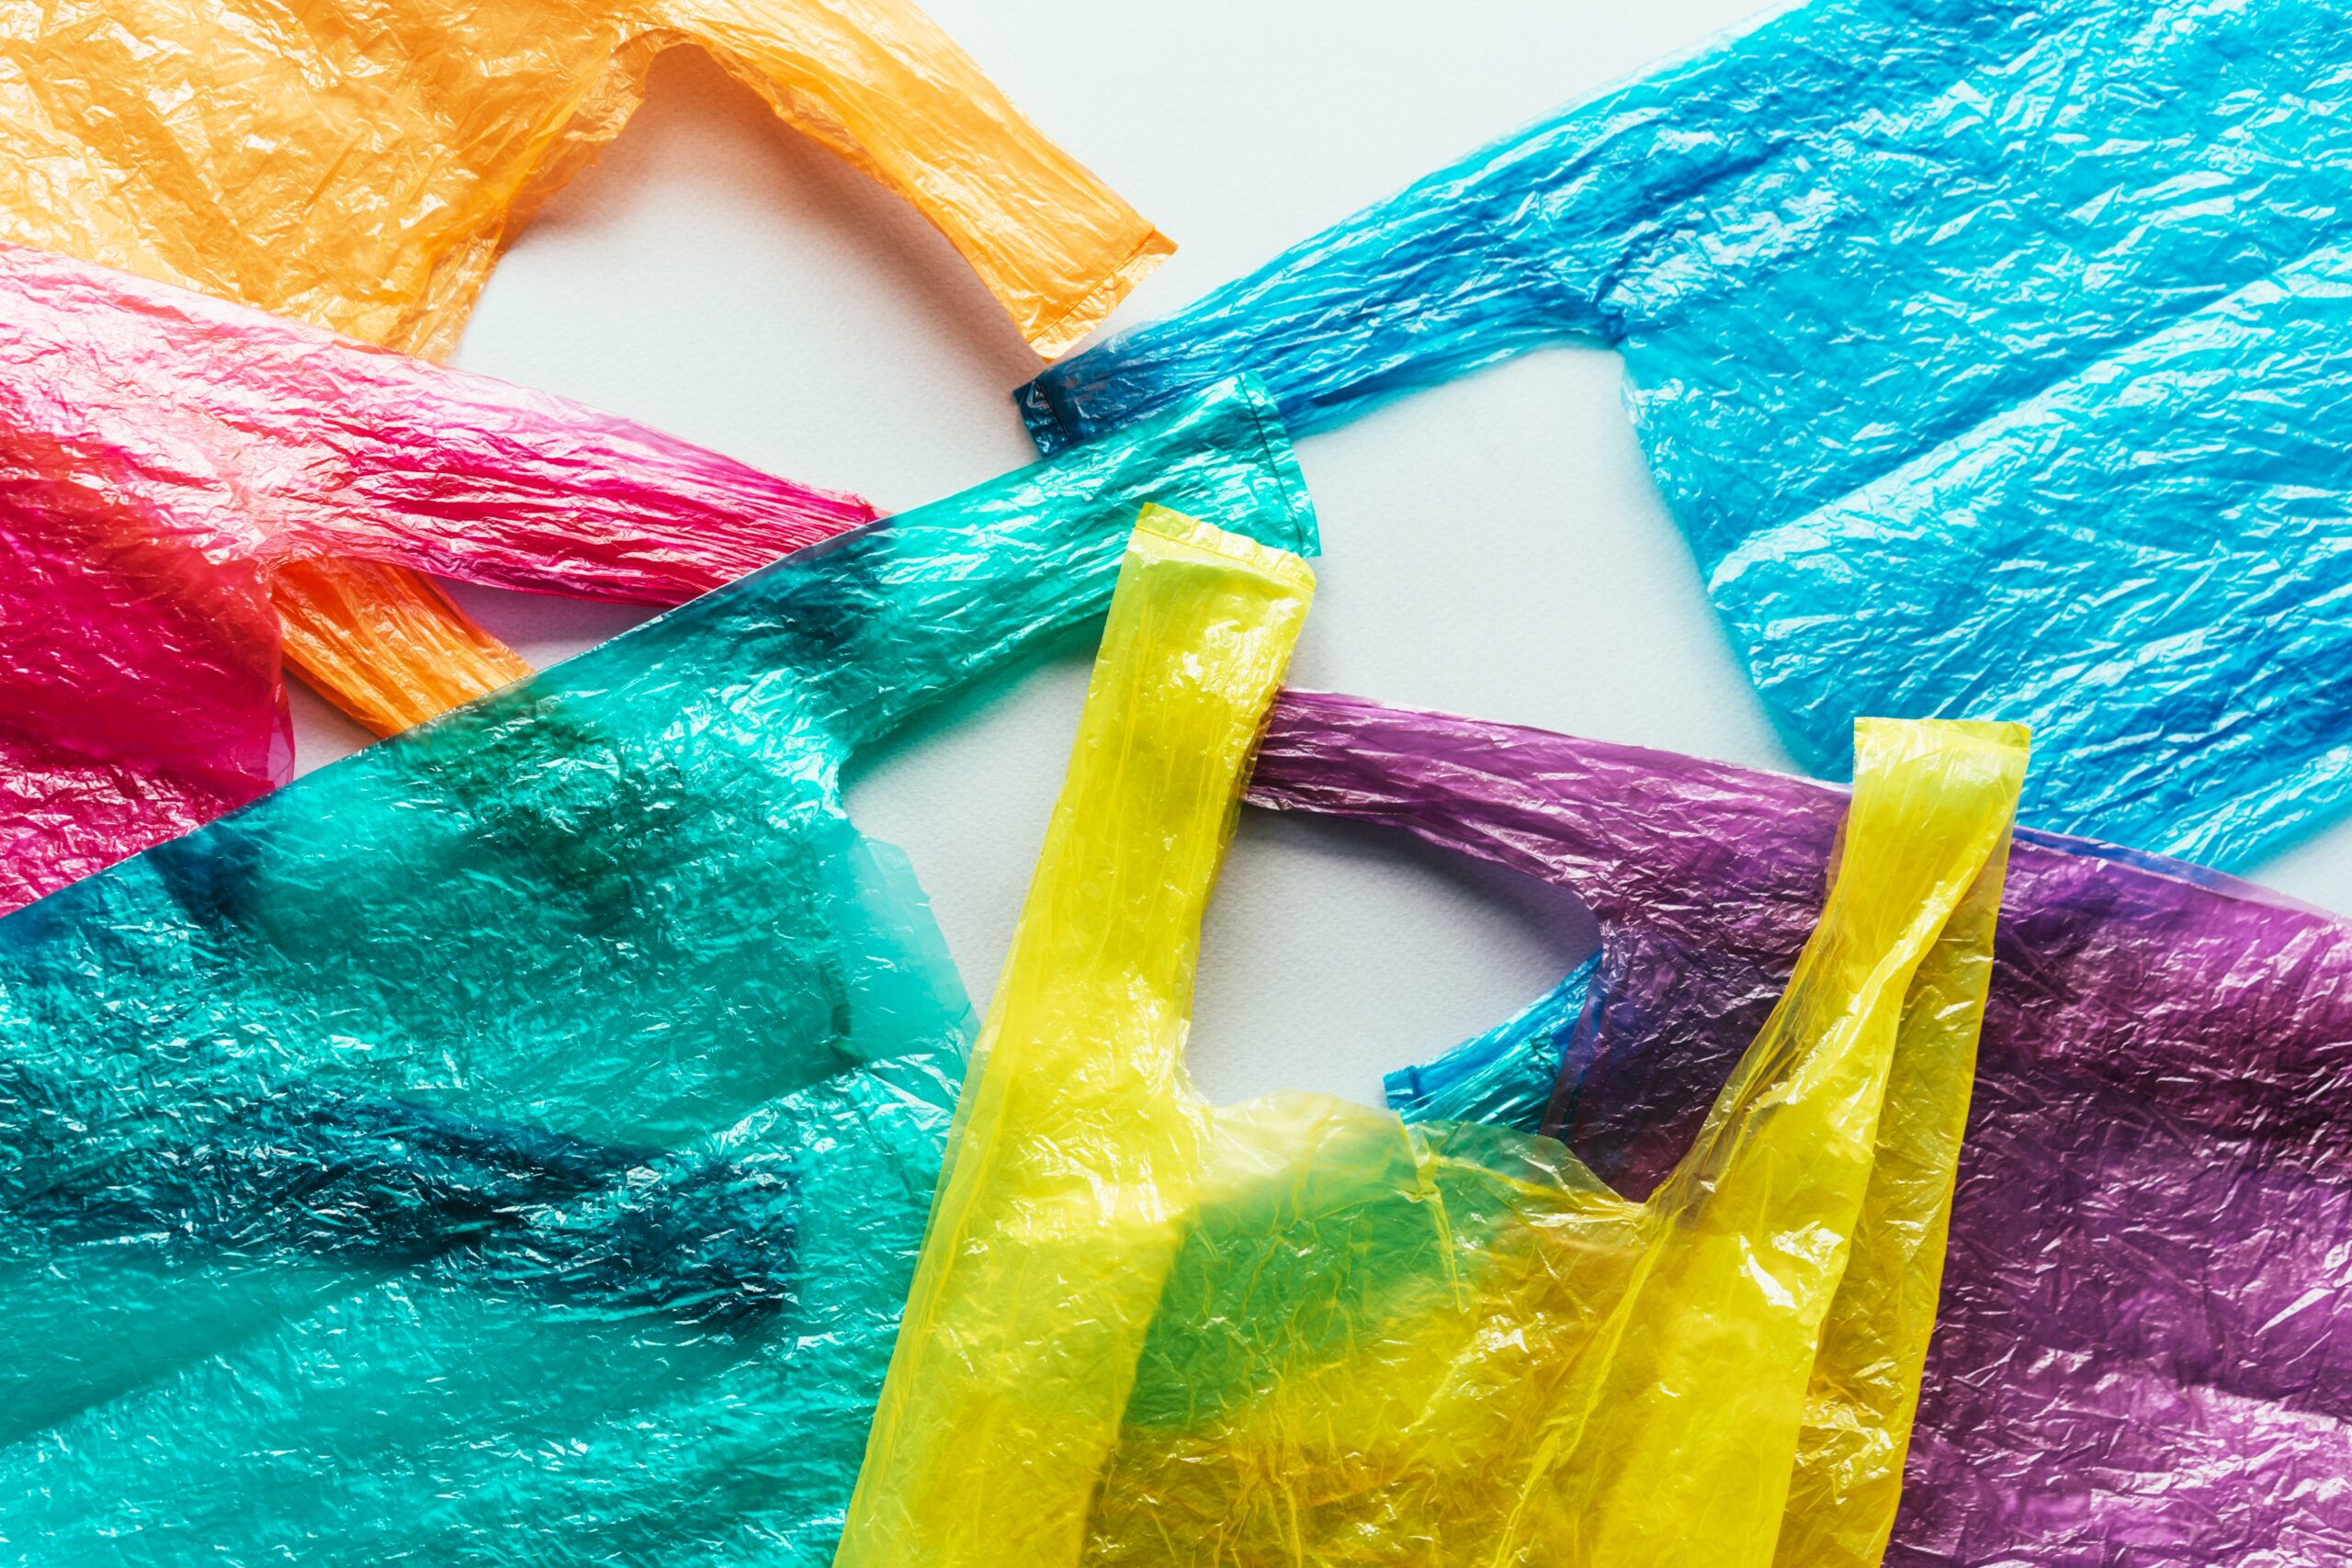 Several bright colored disposable plastic bags